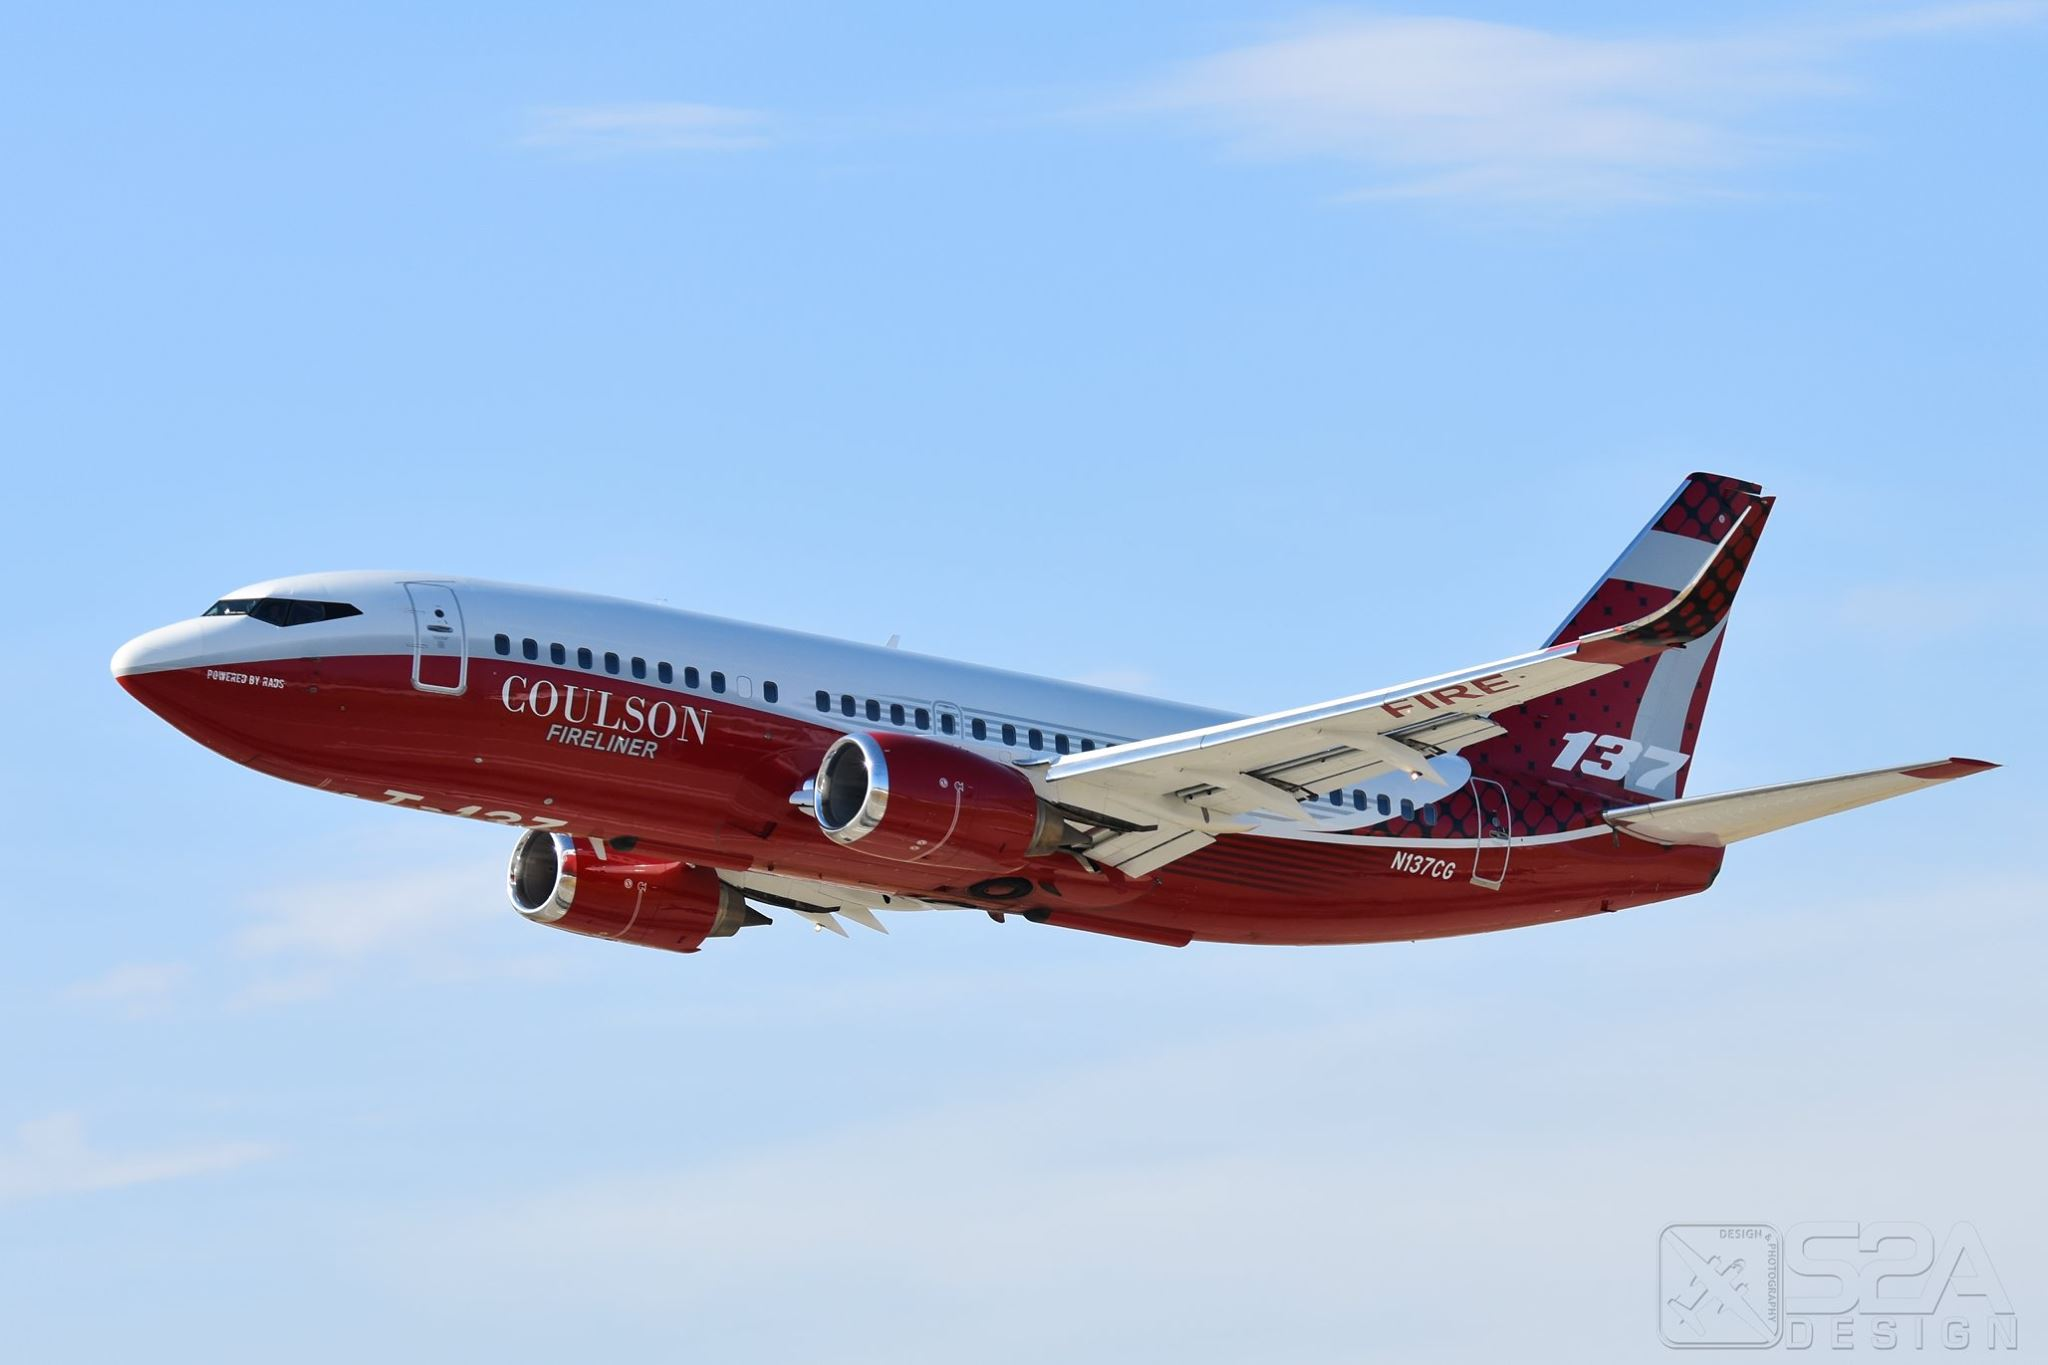 Coulson's Tanker 137, the B737 Fireliner. Photo by Jeremy Ulloa/S2A Design